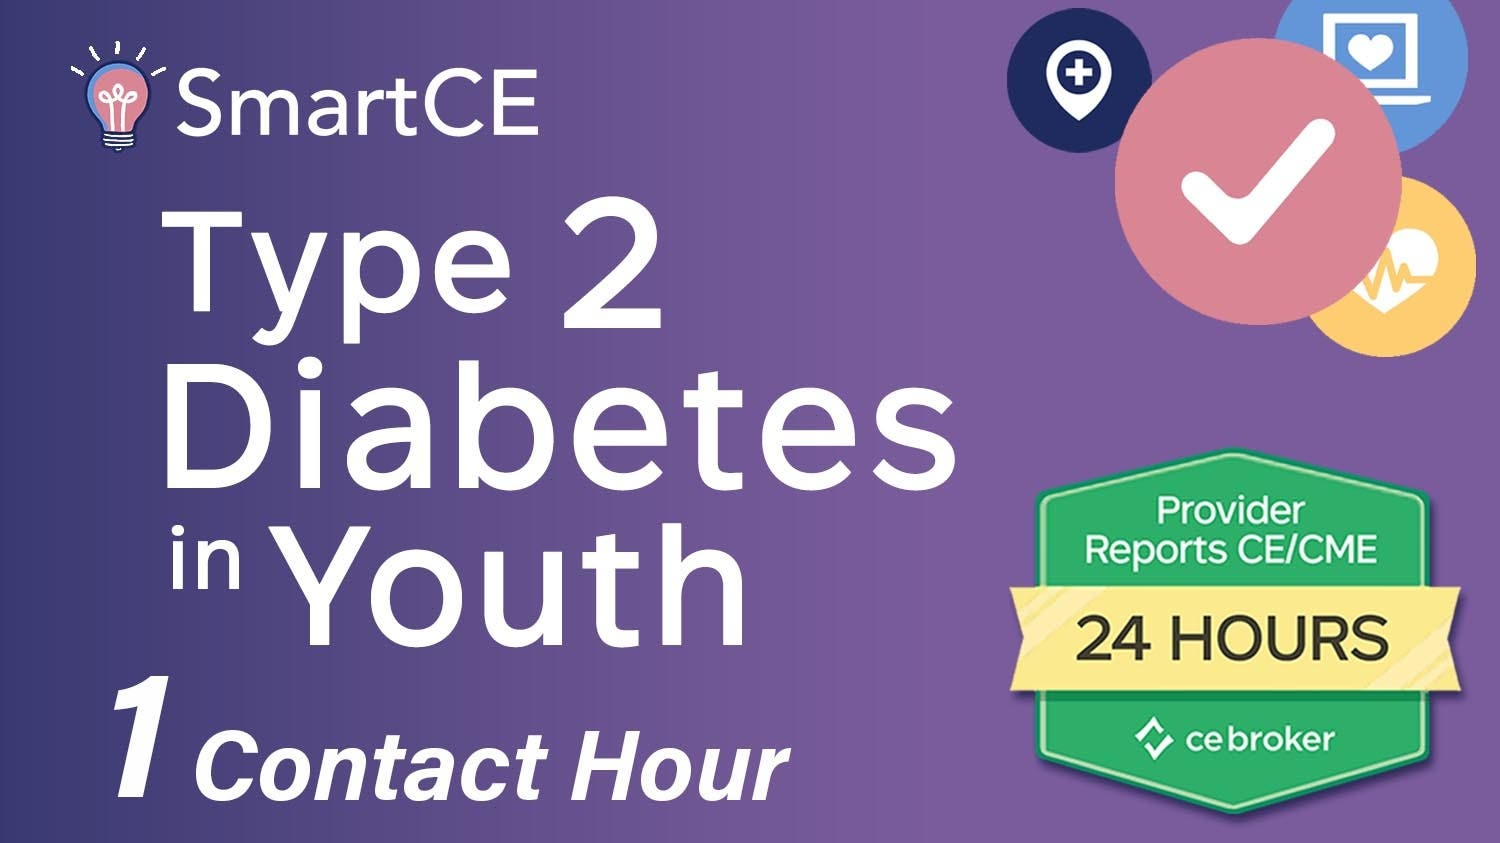 Type 2 Diabetes in Youth - 1 Contact Hour/20-684869